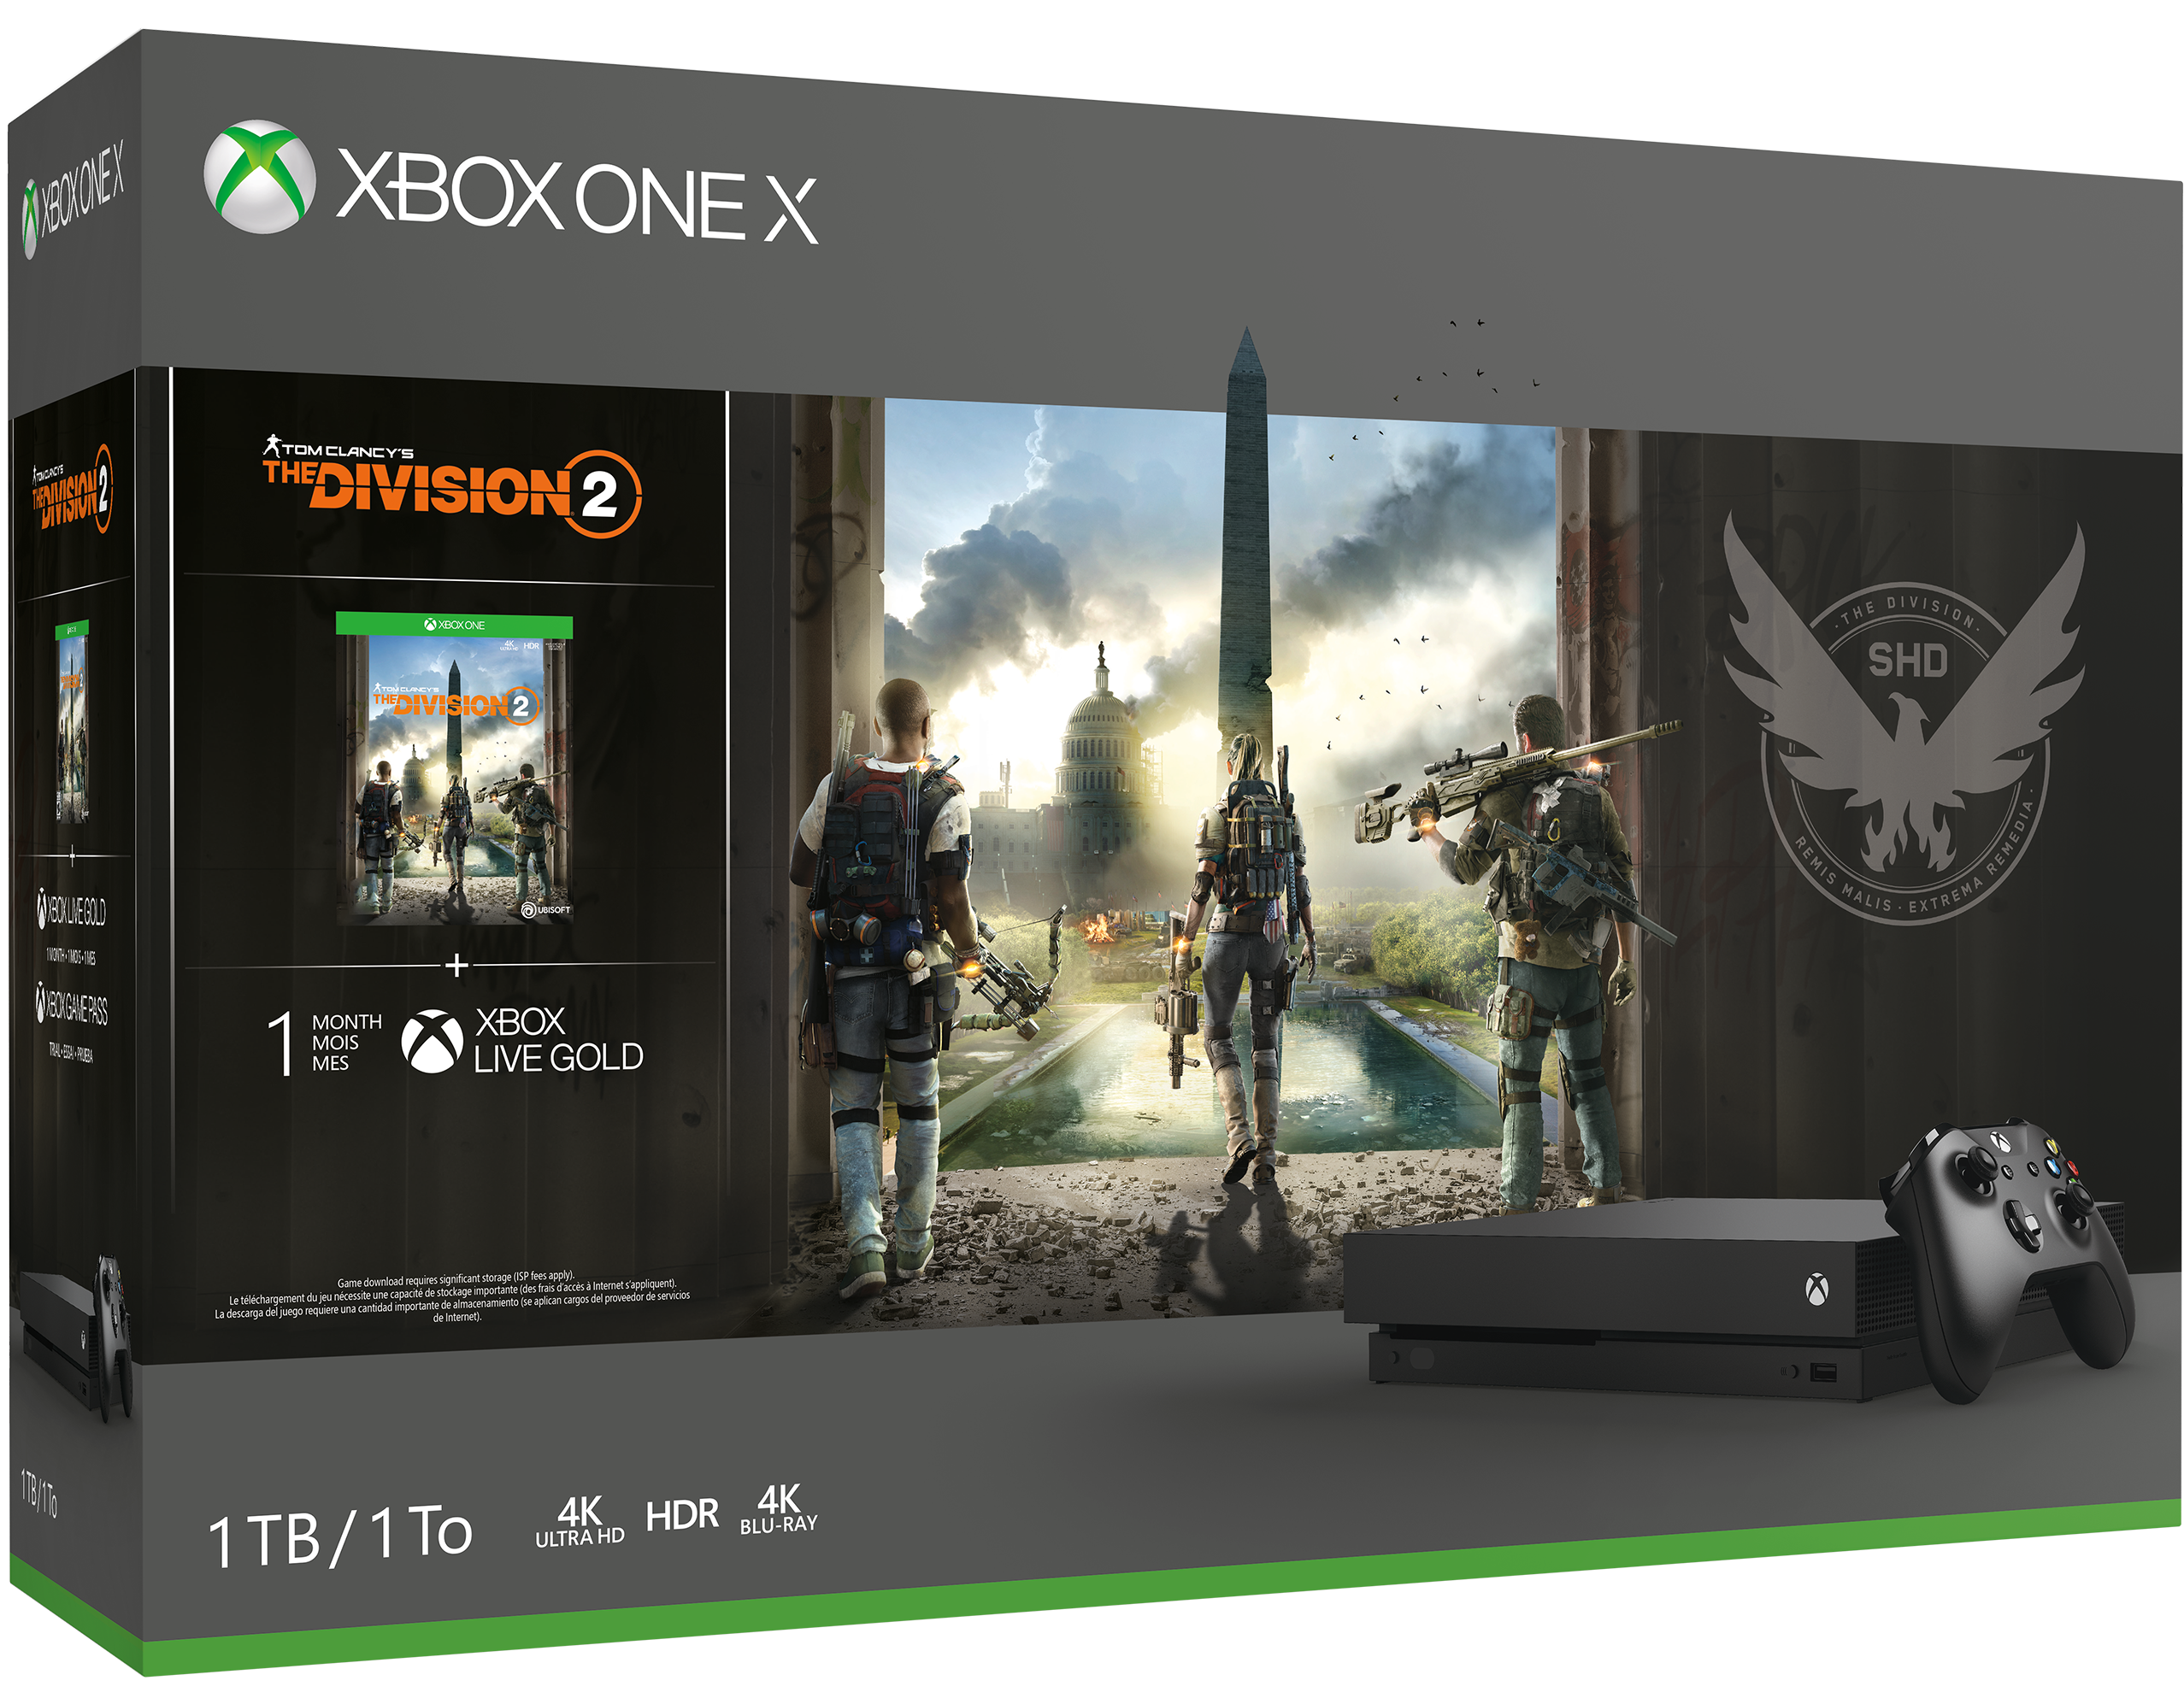 Illustraties op de verpakking van Xbox One X Tom Clancy's The Division 2-bundel